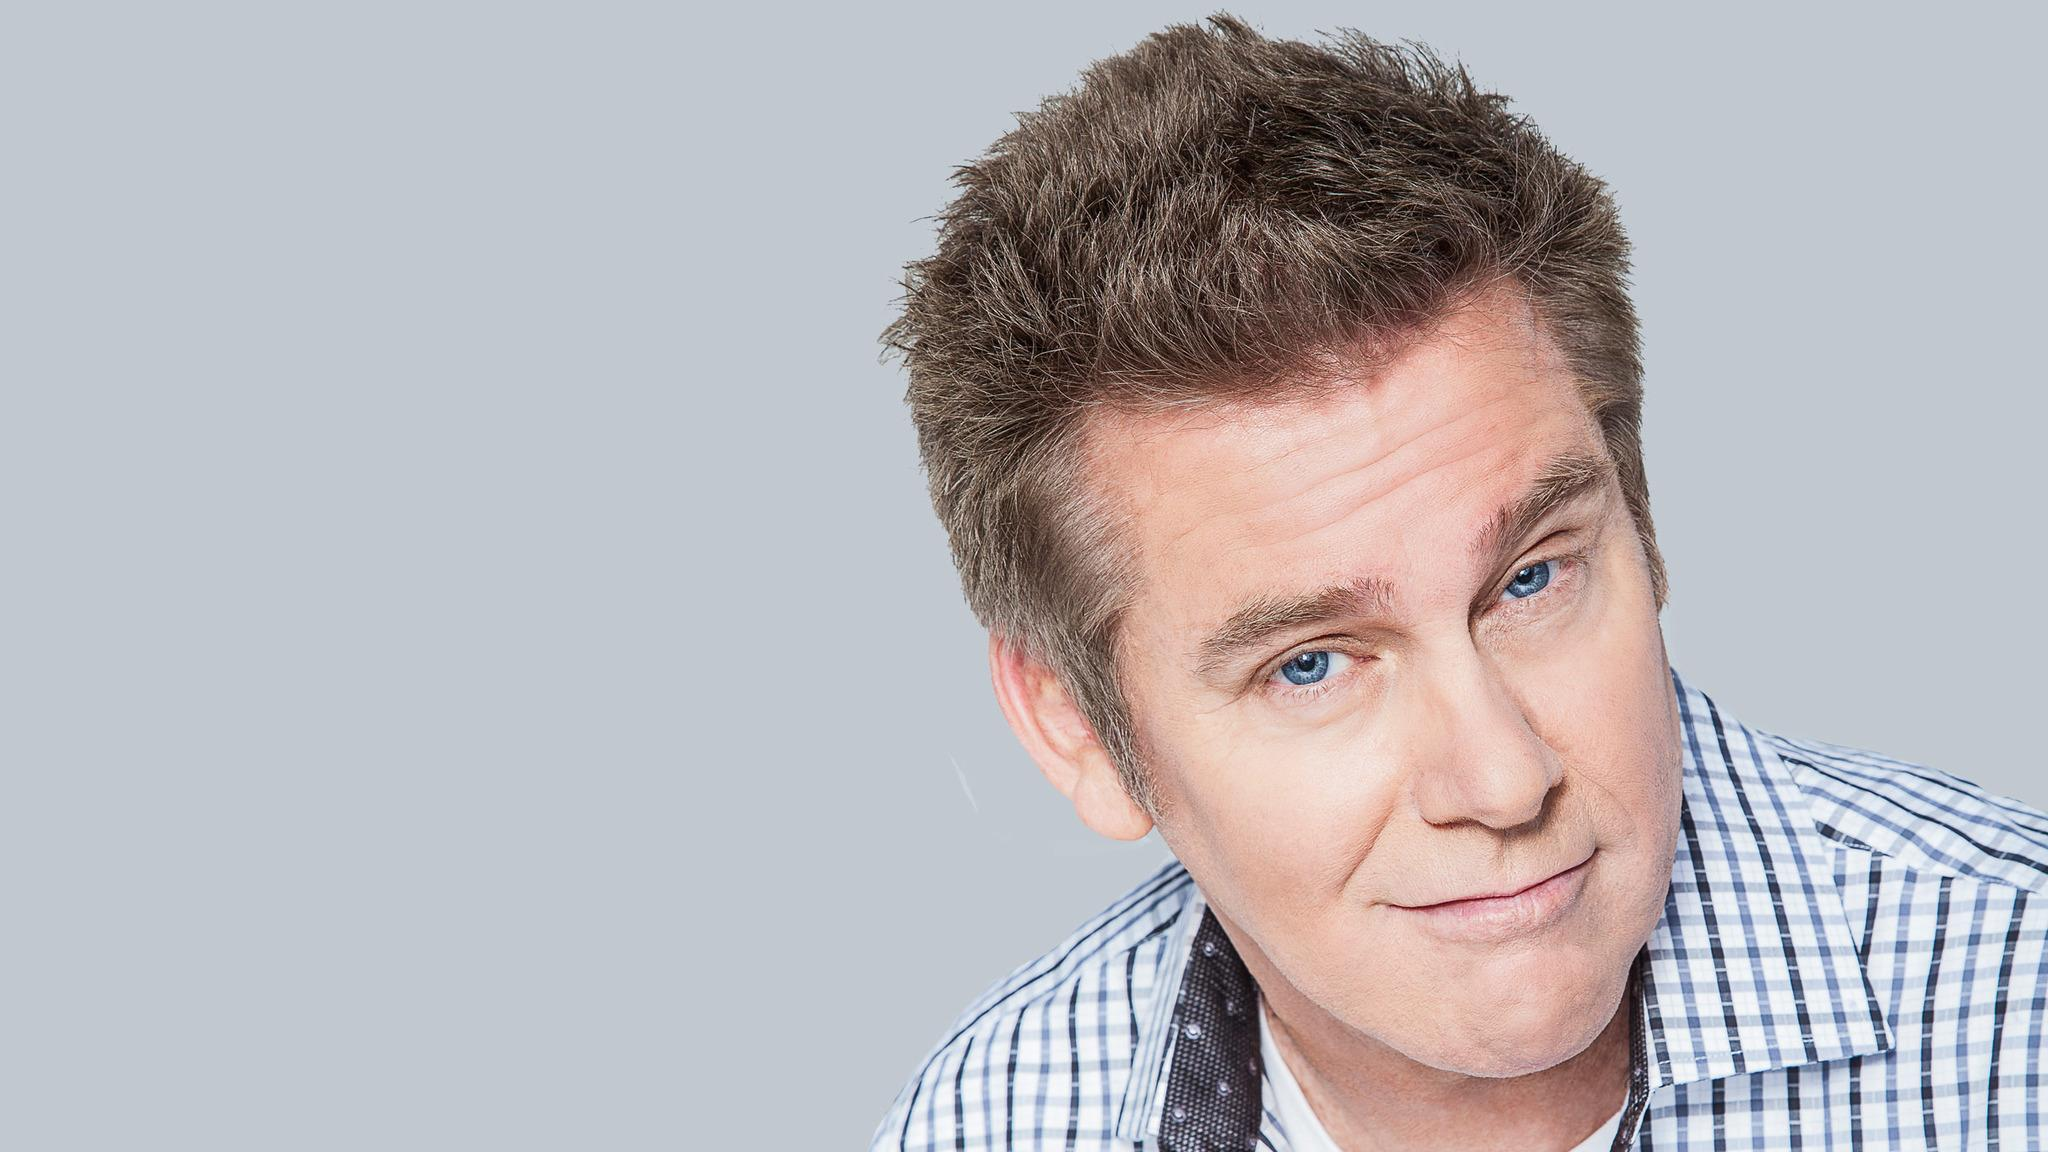 Brian Regan at Singletary Center of Arts